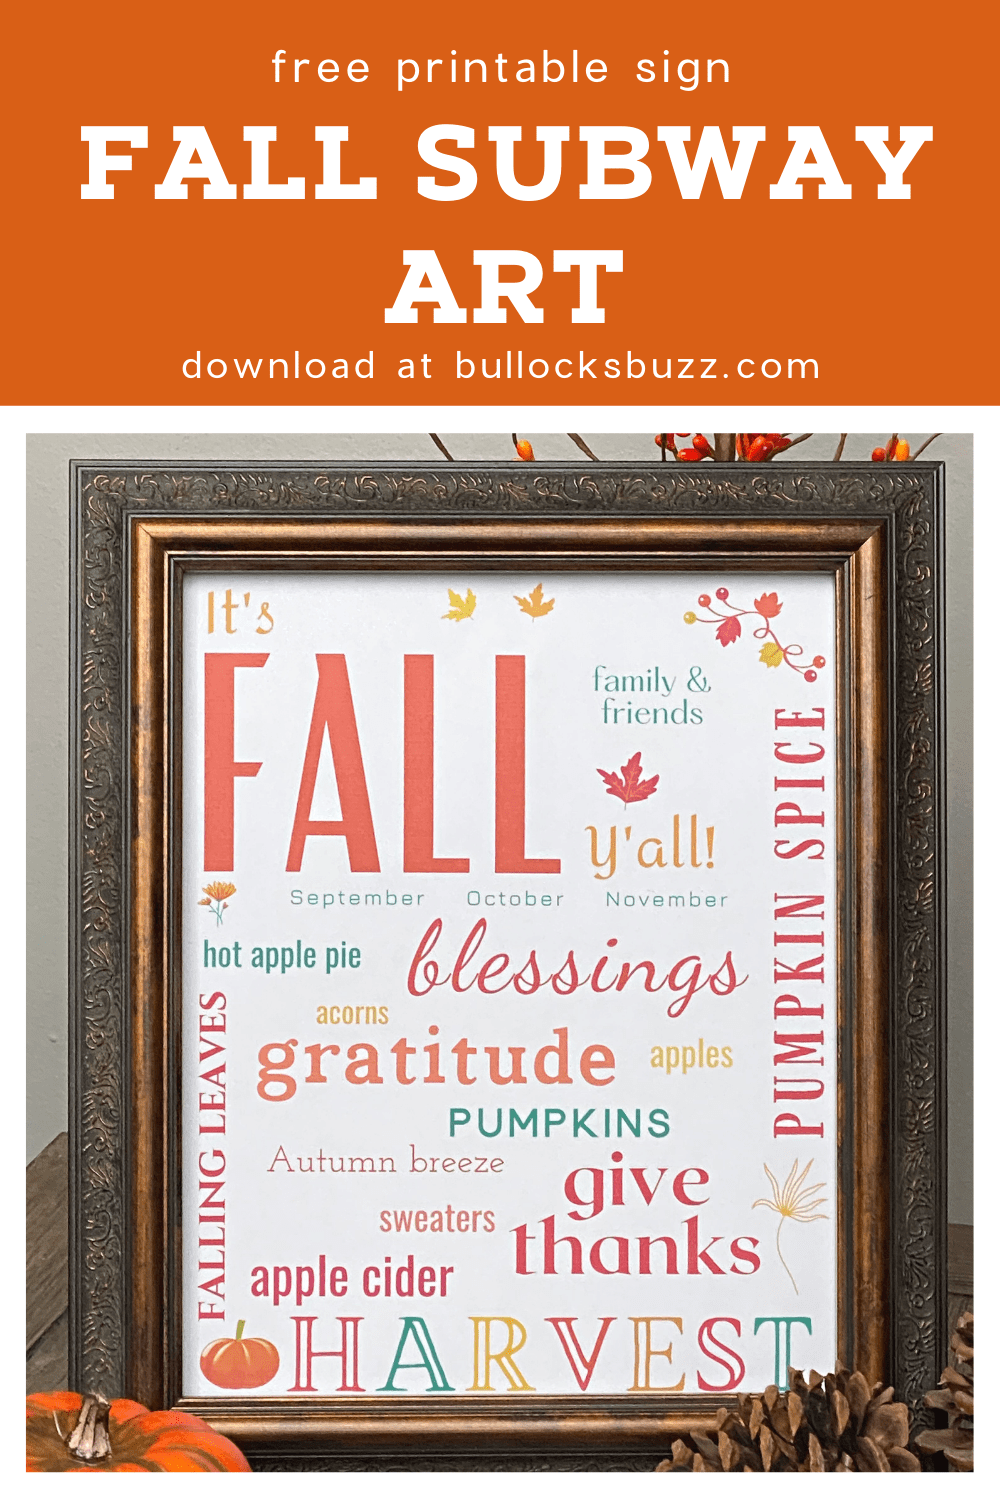 Add a little Fall to your walls with this free, festive fall subway art printable!